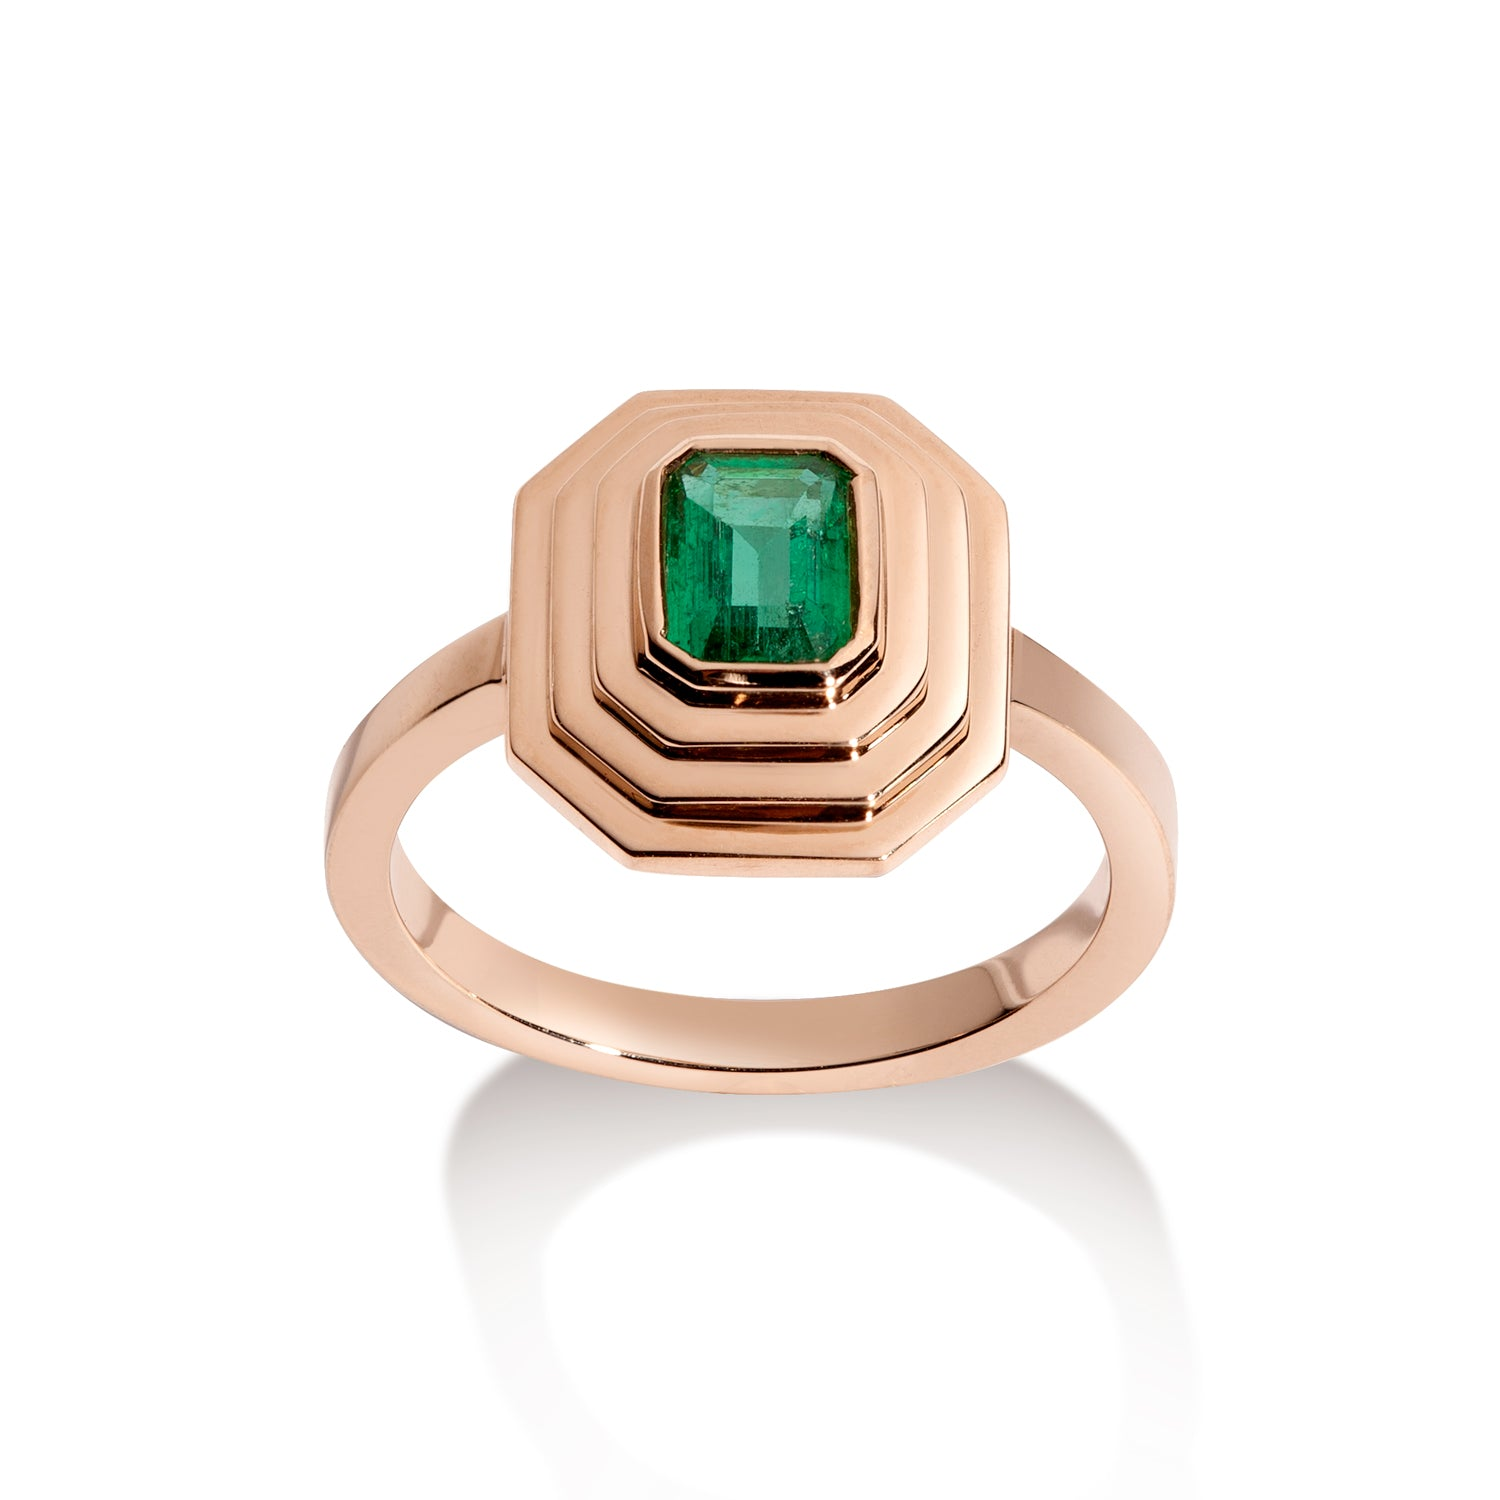 Isabelle Ring - Emerald